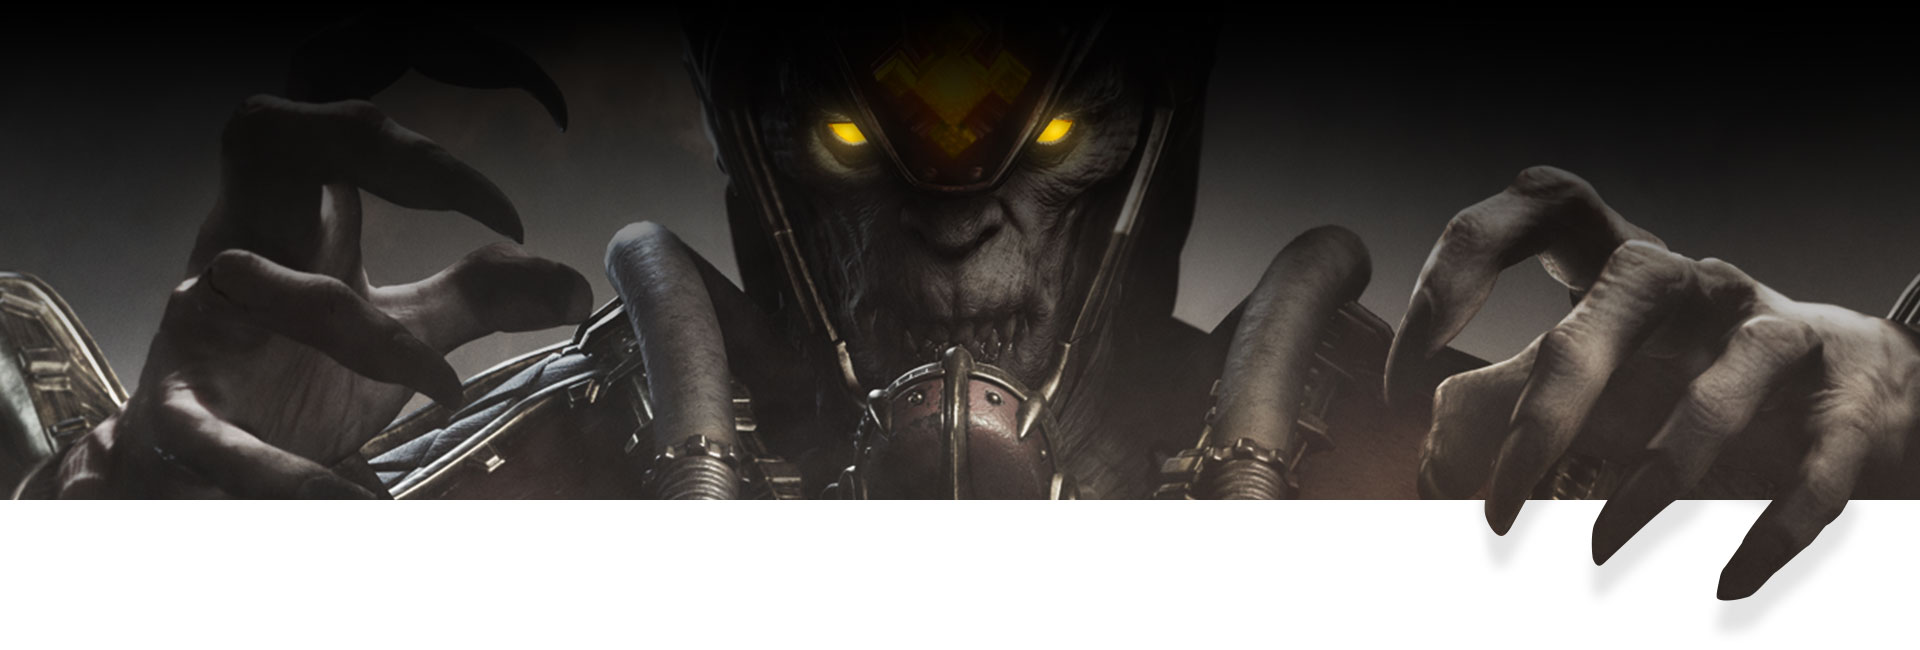 Character with a helmet and glowing yellow eyes reaching